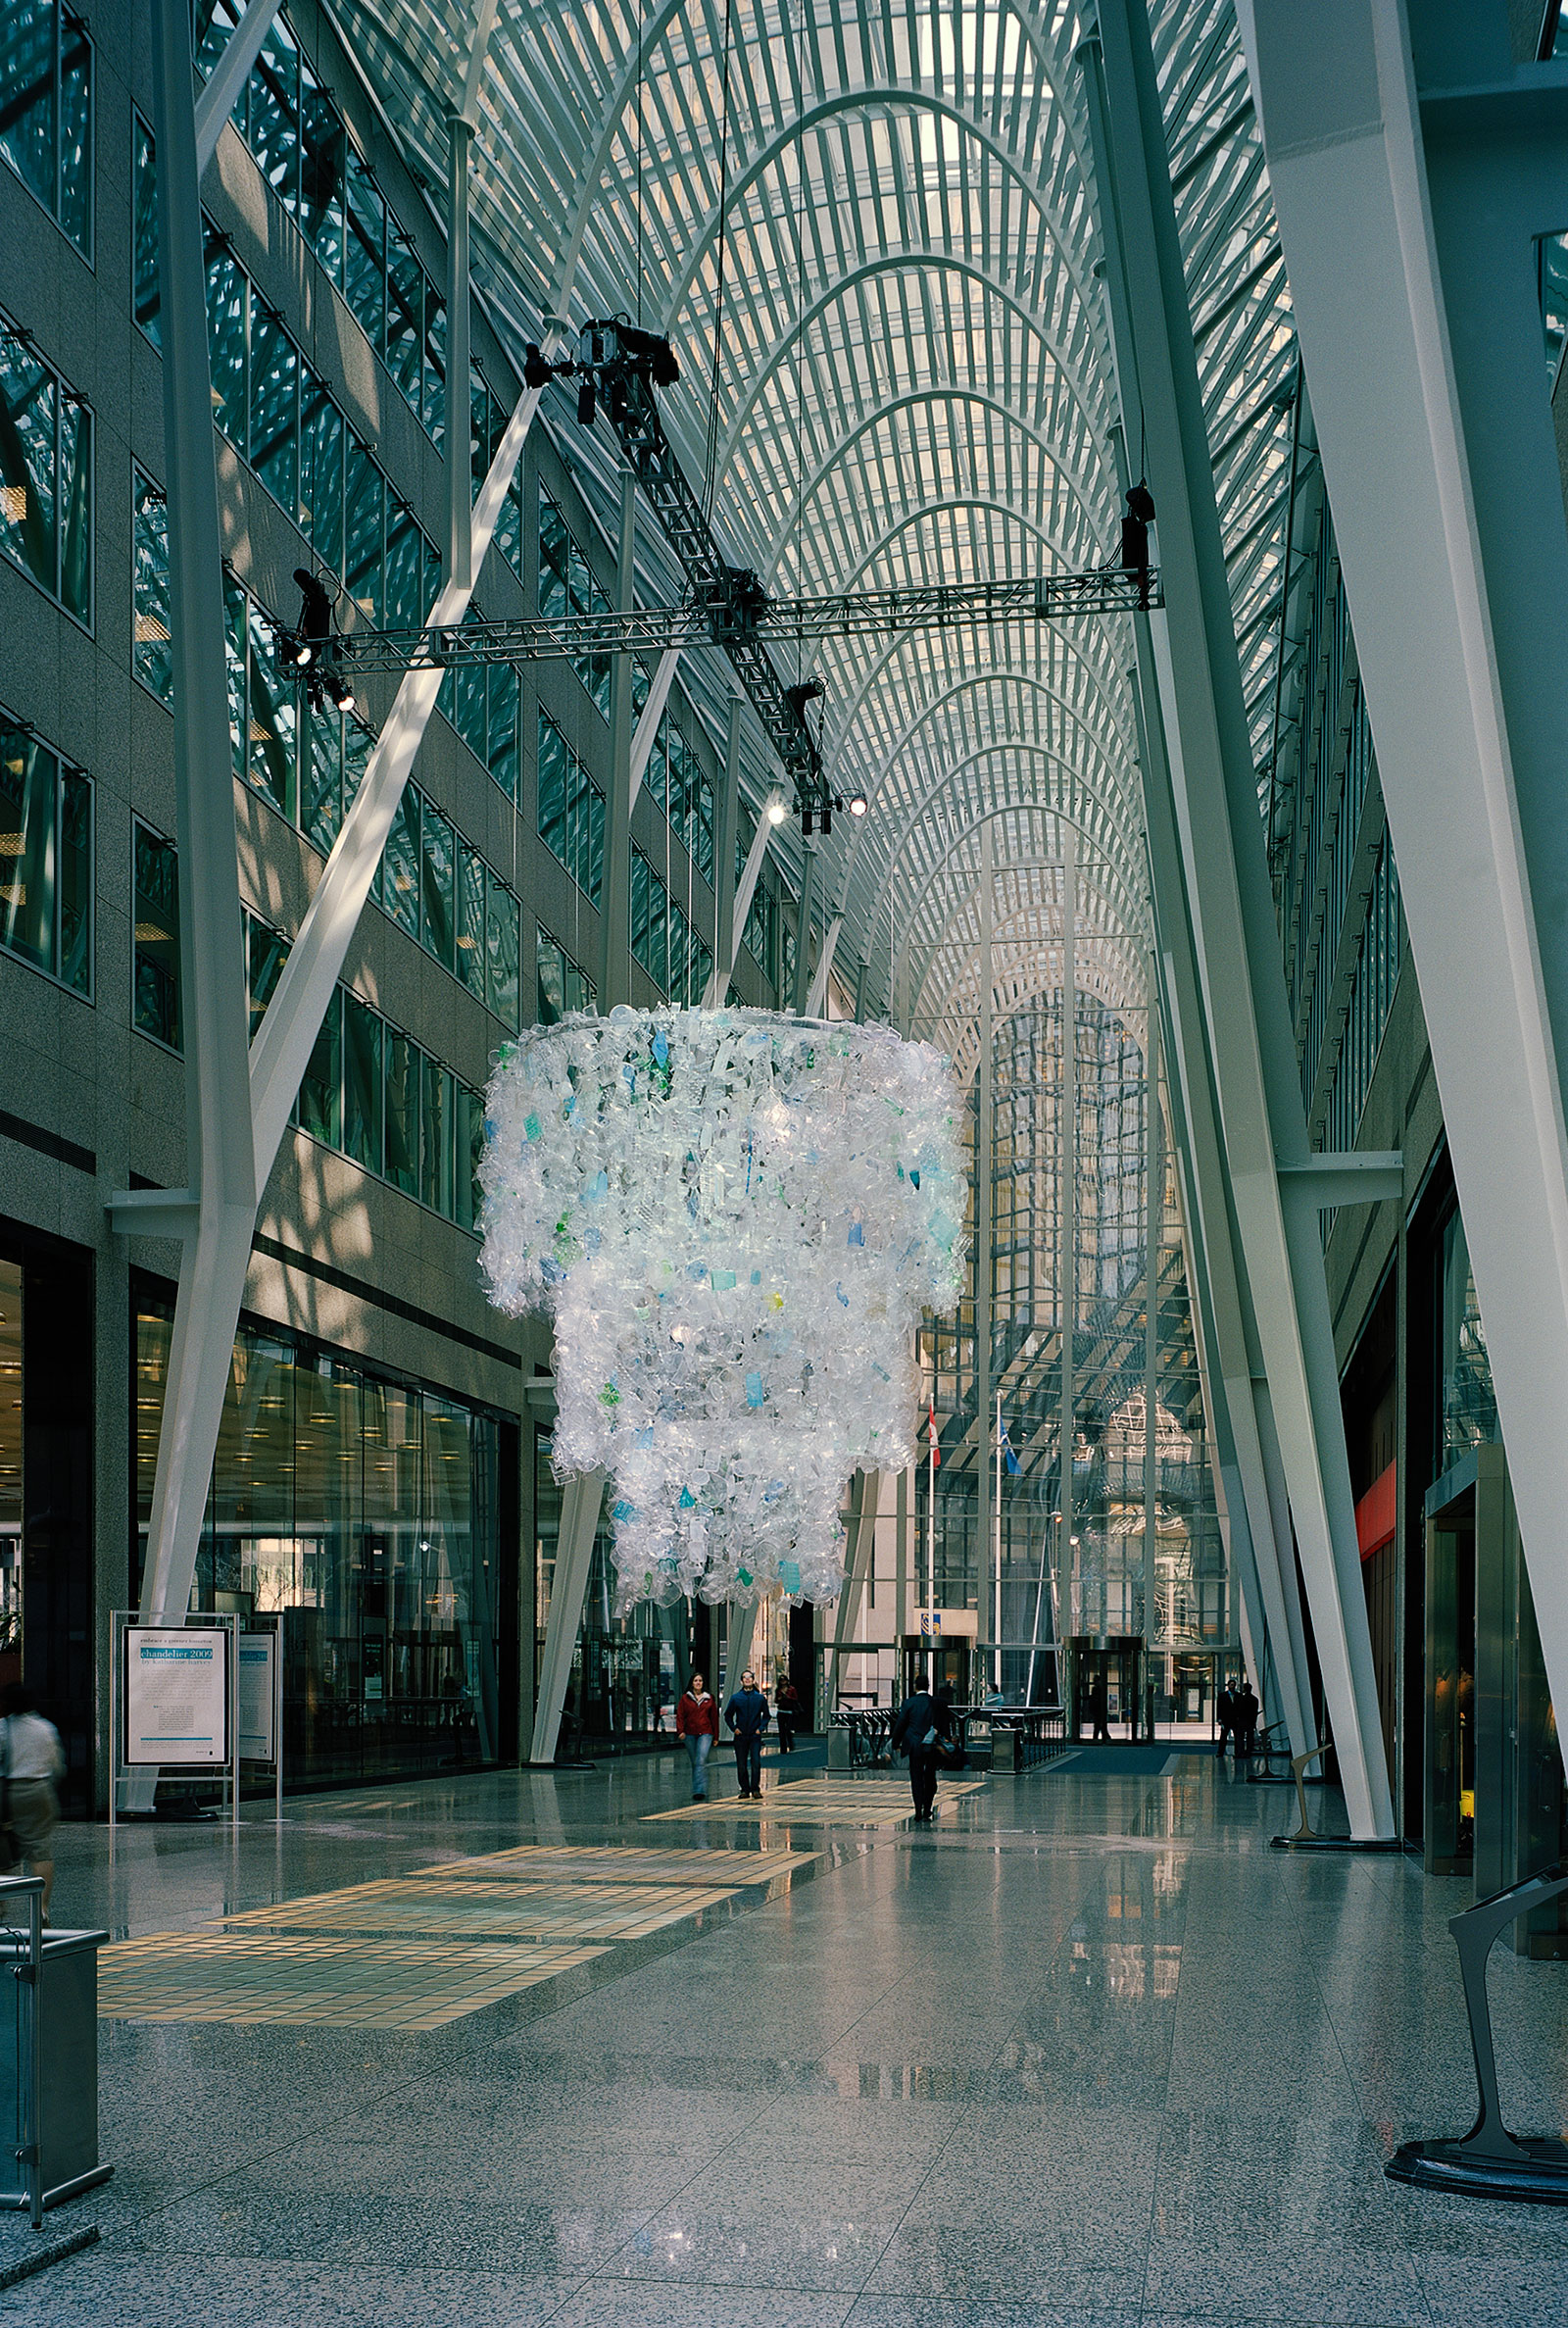 Chandelier 2009 recycled plastic, aluminum hoops, monofilament (Brookfield Place, Toronto) commissioned by Brookfield Properties photo by Peter MacCallum